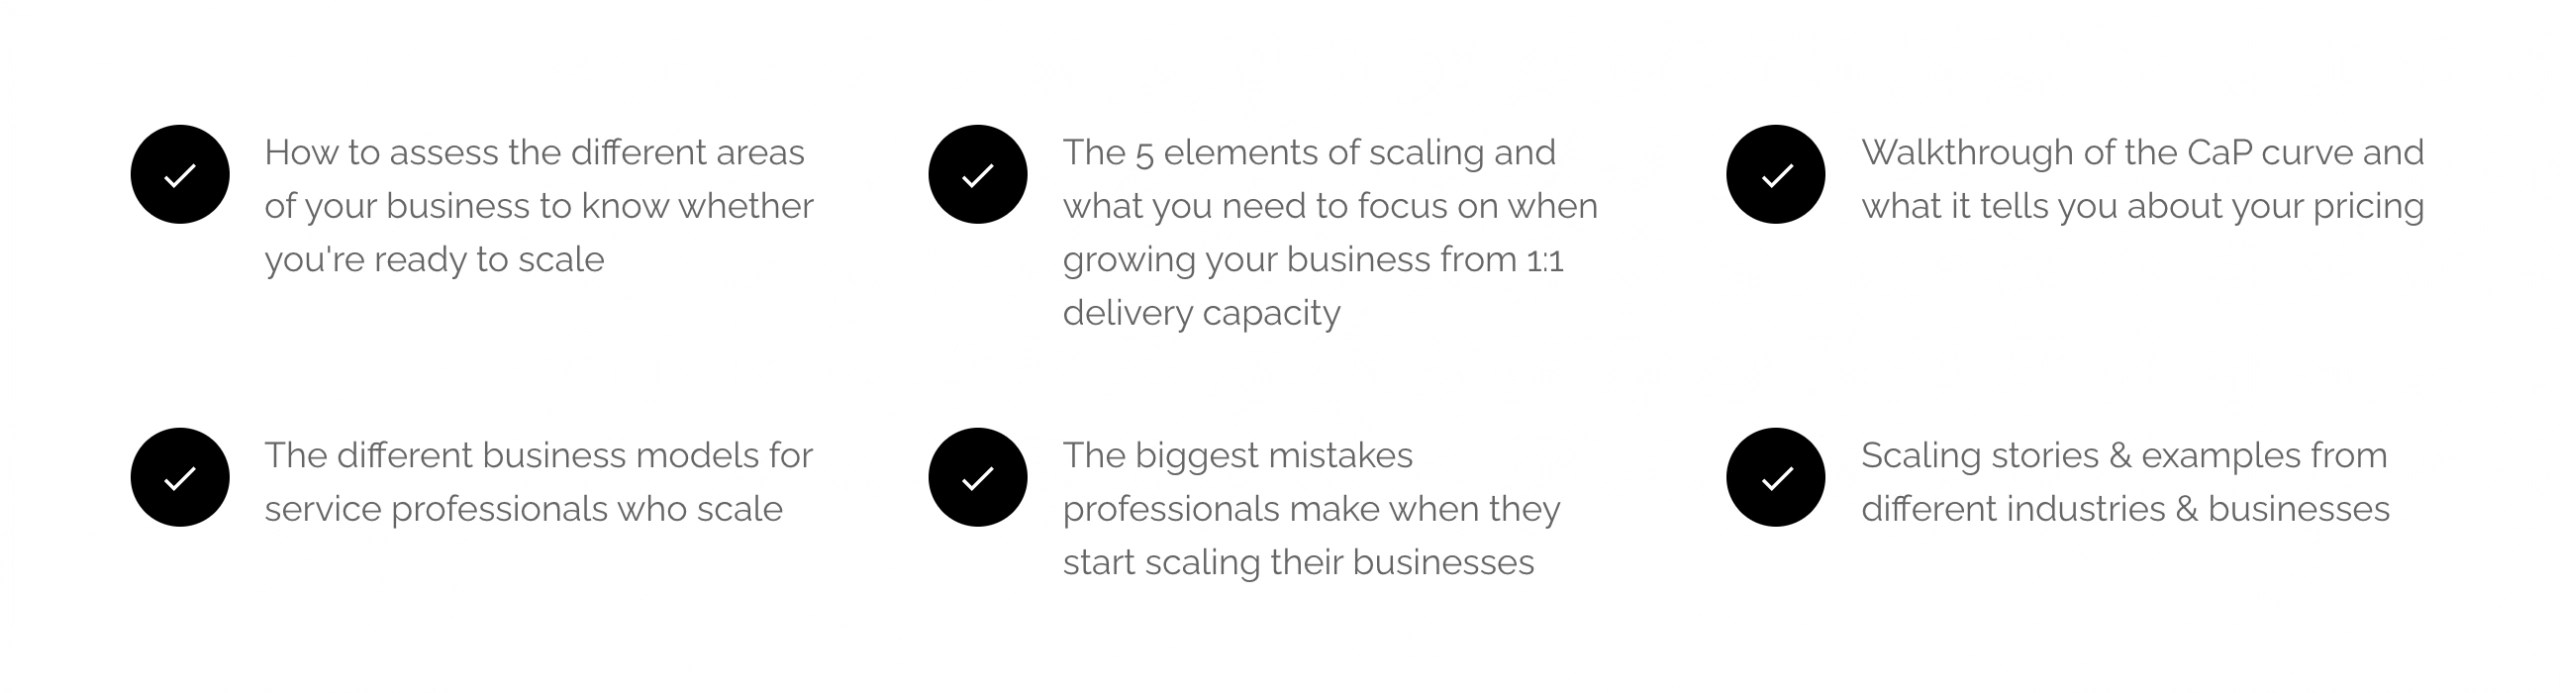 how to scale your business with ease